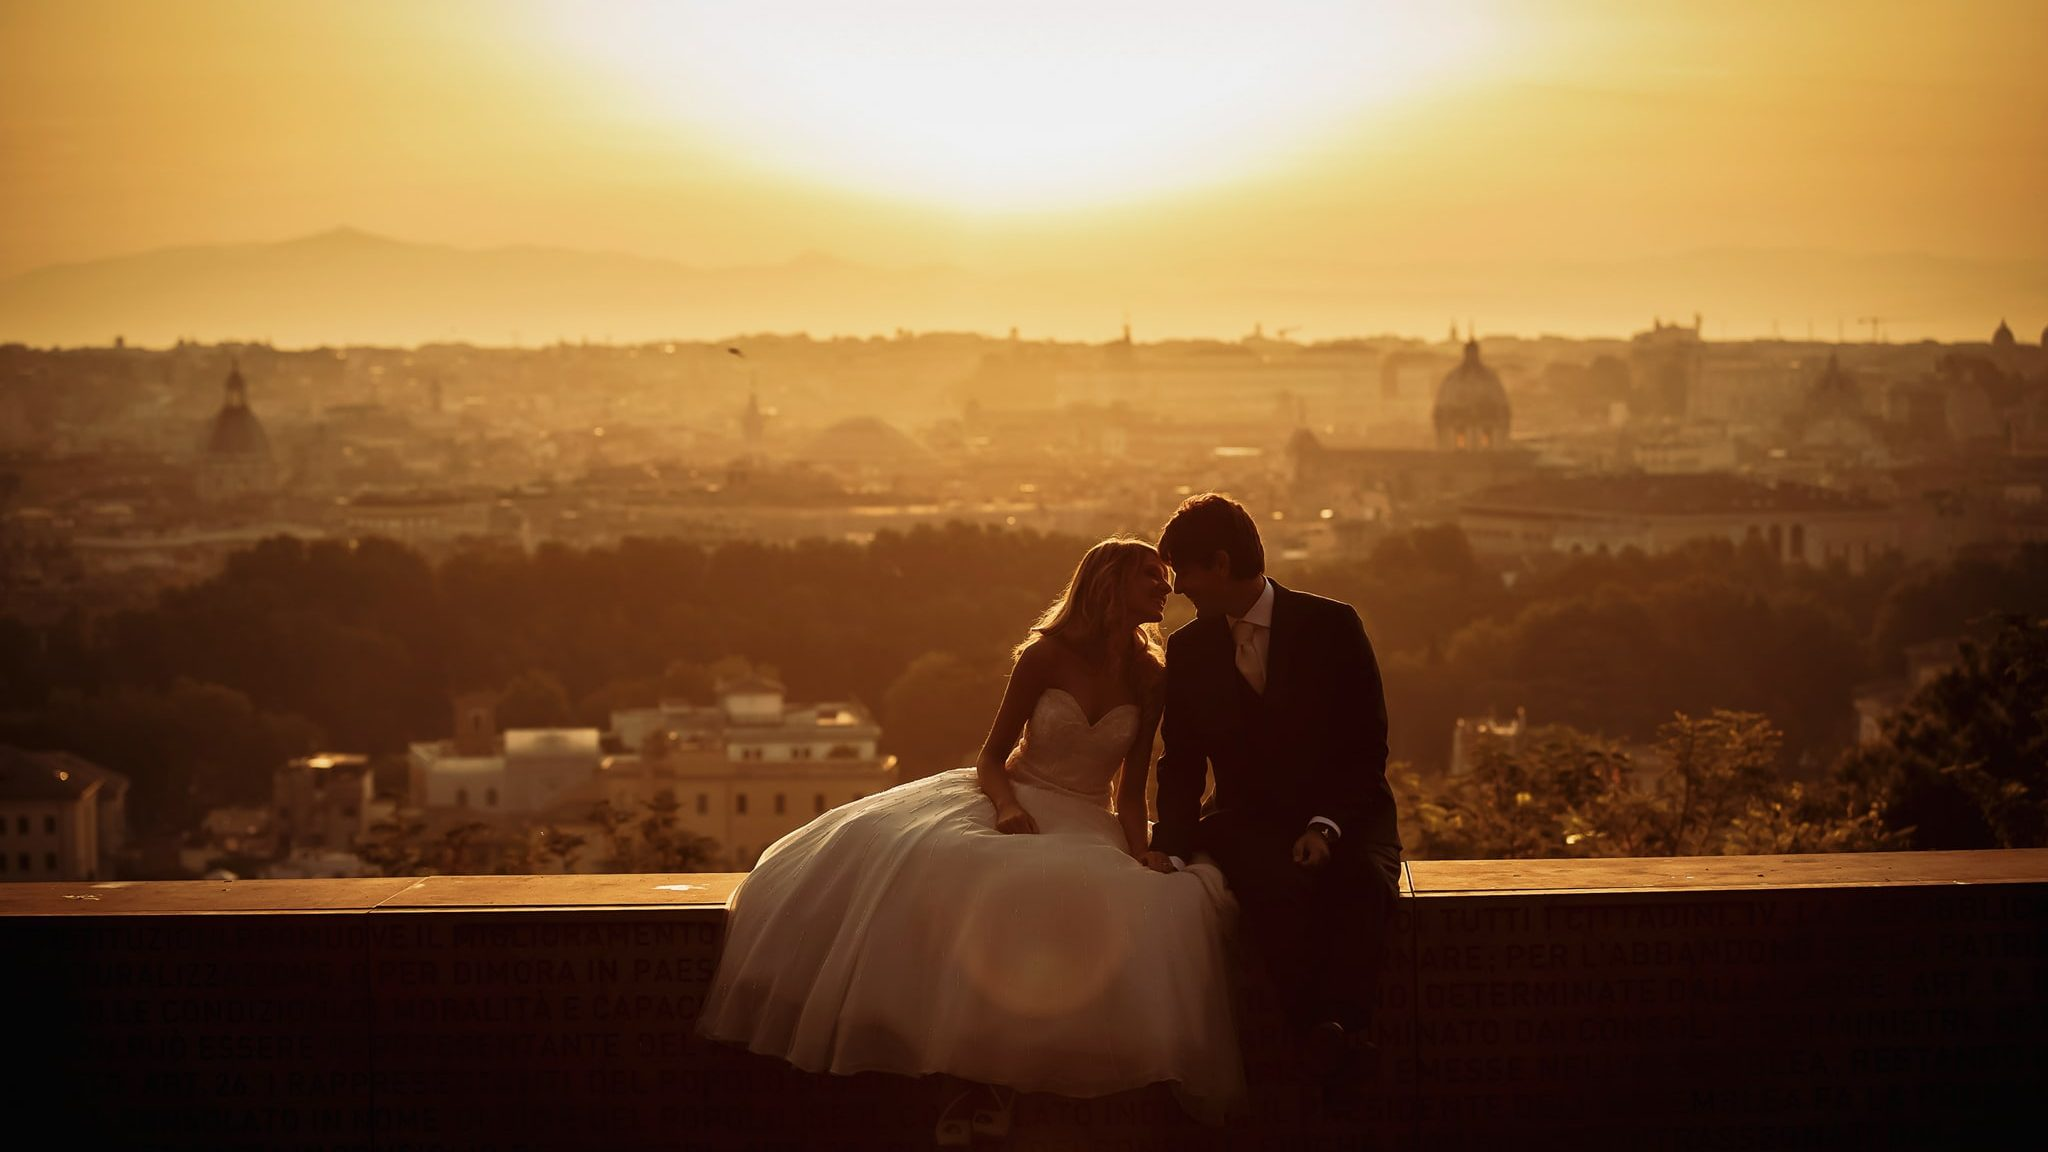 post-wedding photo shoot of the newlyweds with rome in the background at dawn